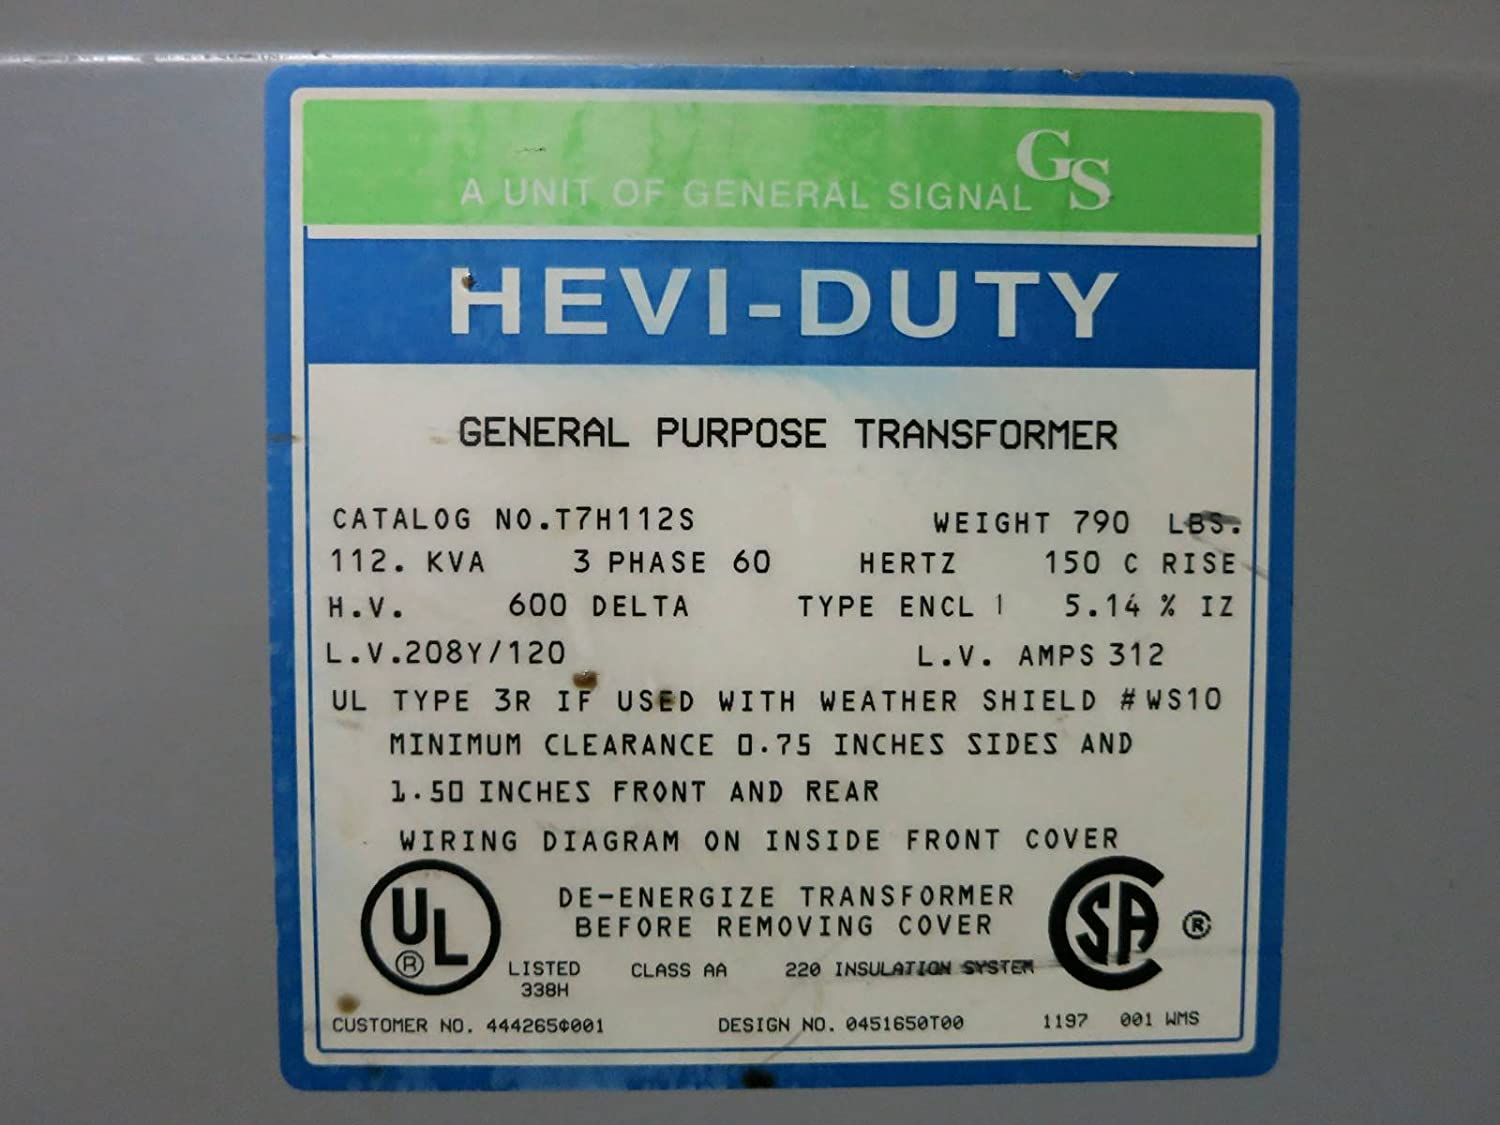 208y 120 Volt Wiring Diagram Library 240 Delta Gs Hevi Duty Electric 112 Kva 600 3ph T7h112s Transformer 112kva 208